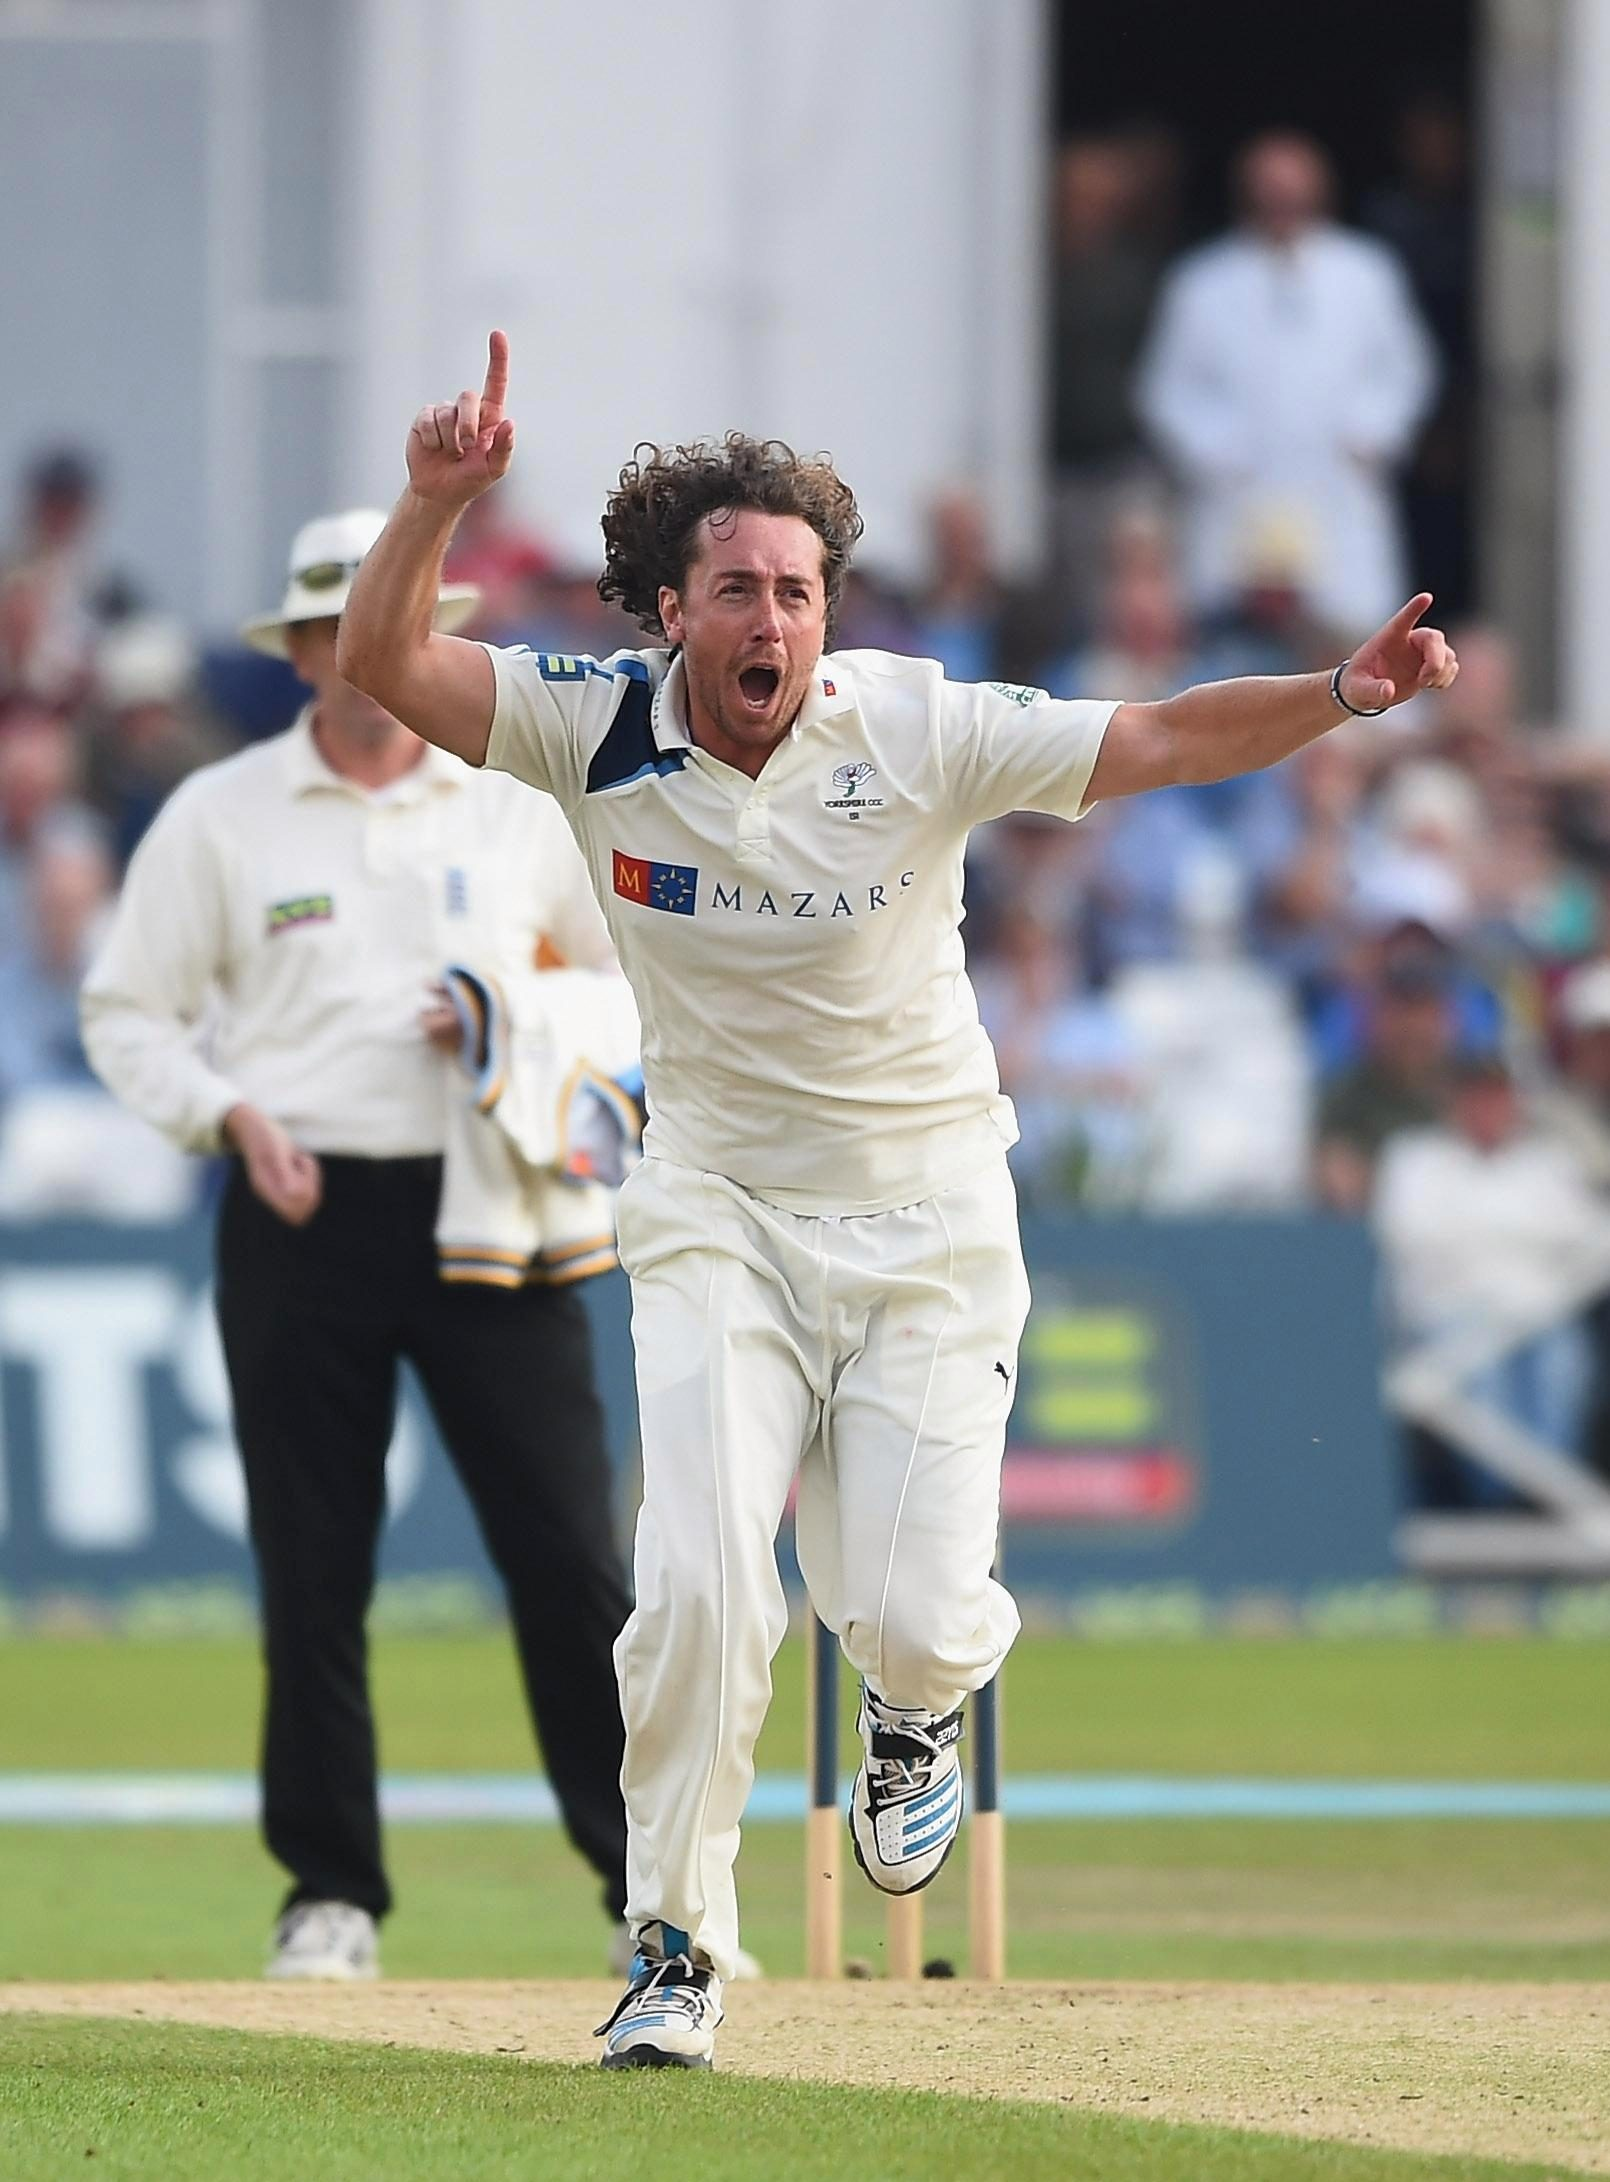 Sidebottom's 20-year career at clubs like Yorkshire and Notts came to an end last year